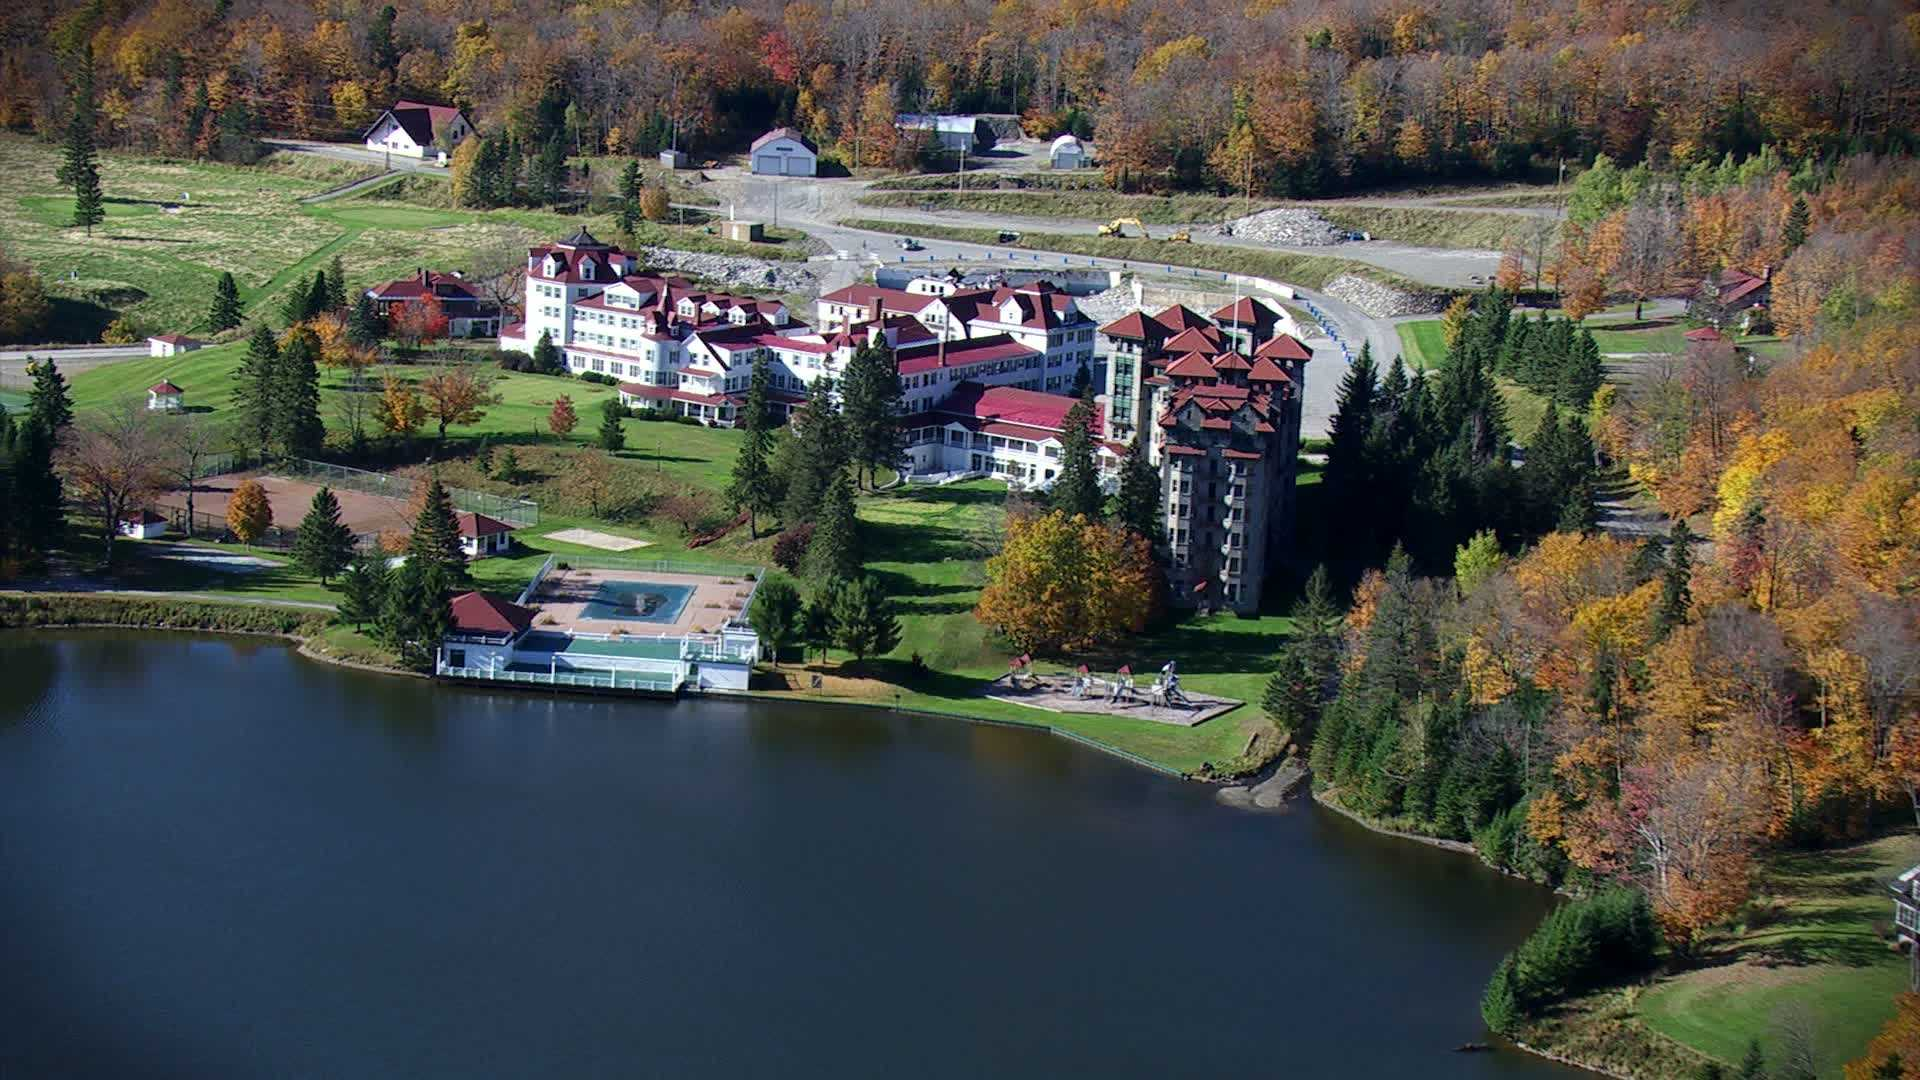 Check out what the iconic Balsams Resort will have that it's never had before, and why you won't find anything like it in the North East - Tuesday at 11.